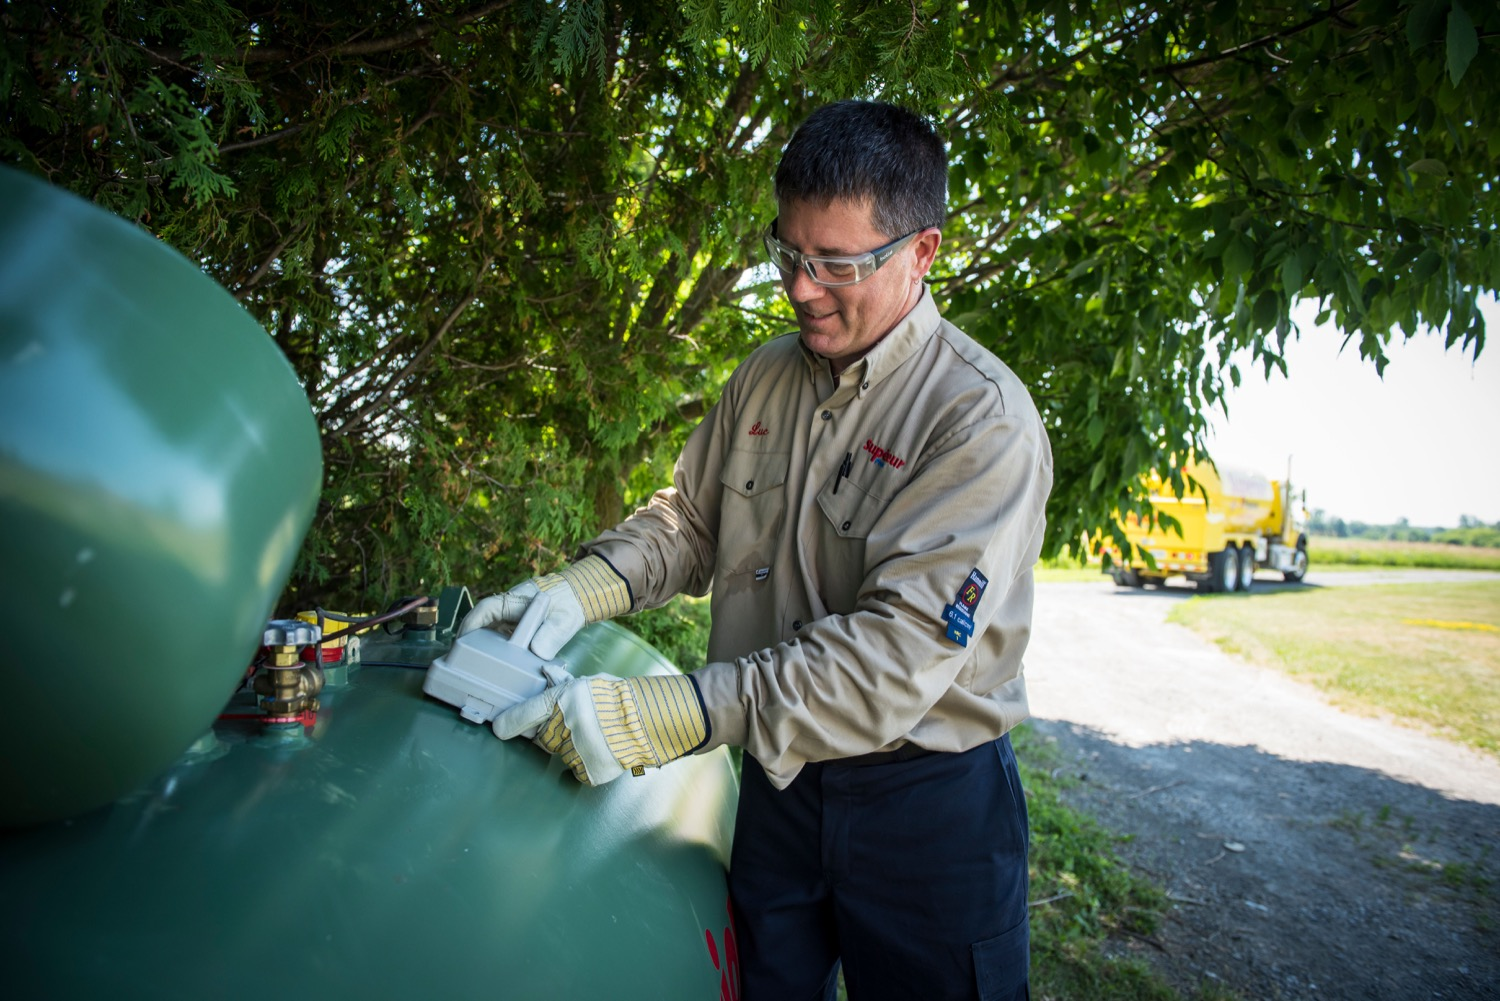 Superior Propane employee installing a smart tank monitor on a residential propane tank.